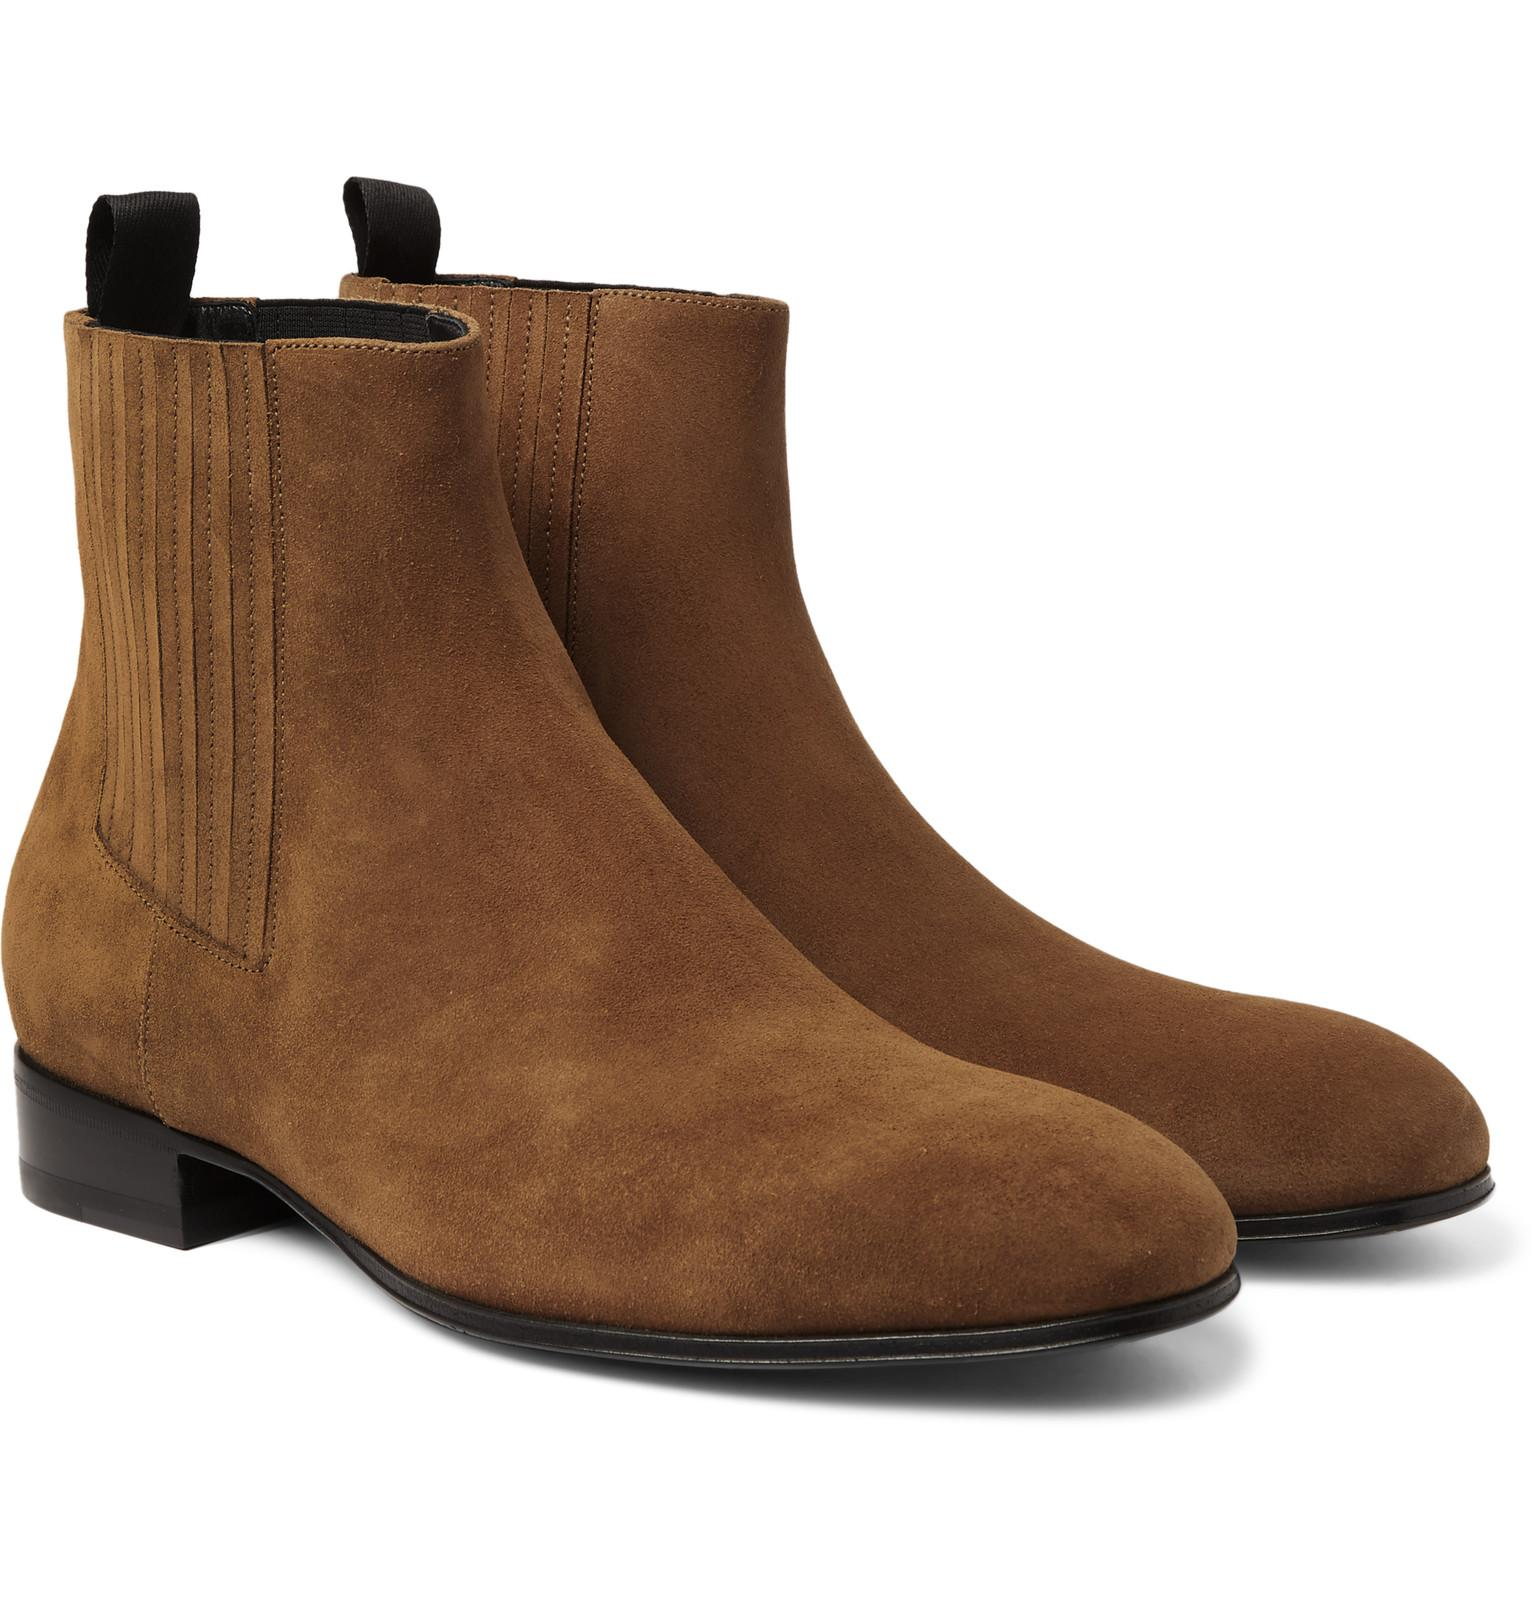 Balenciaga Suede Chelsea Boots In Blue For Men Lyst